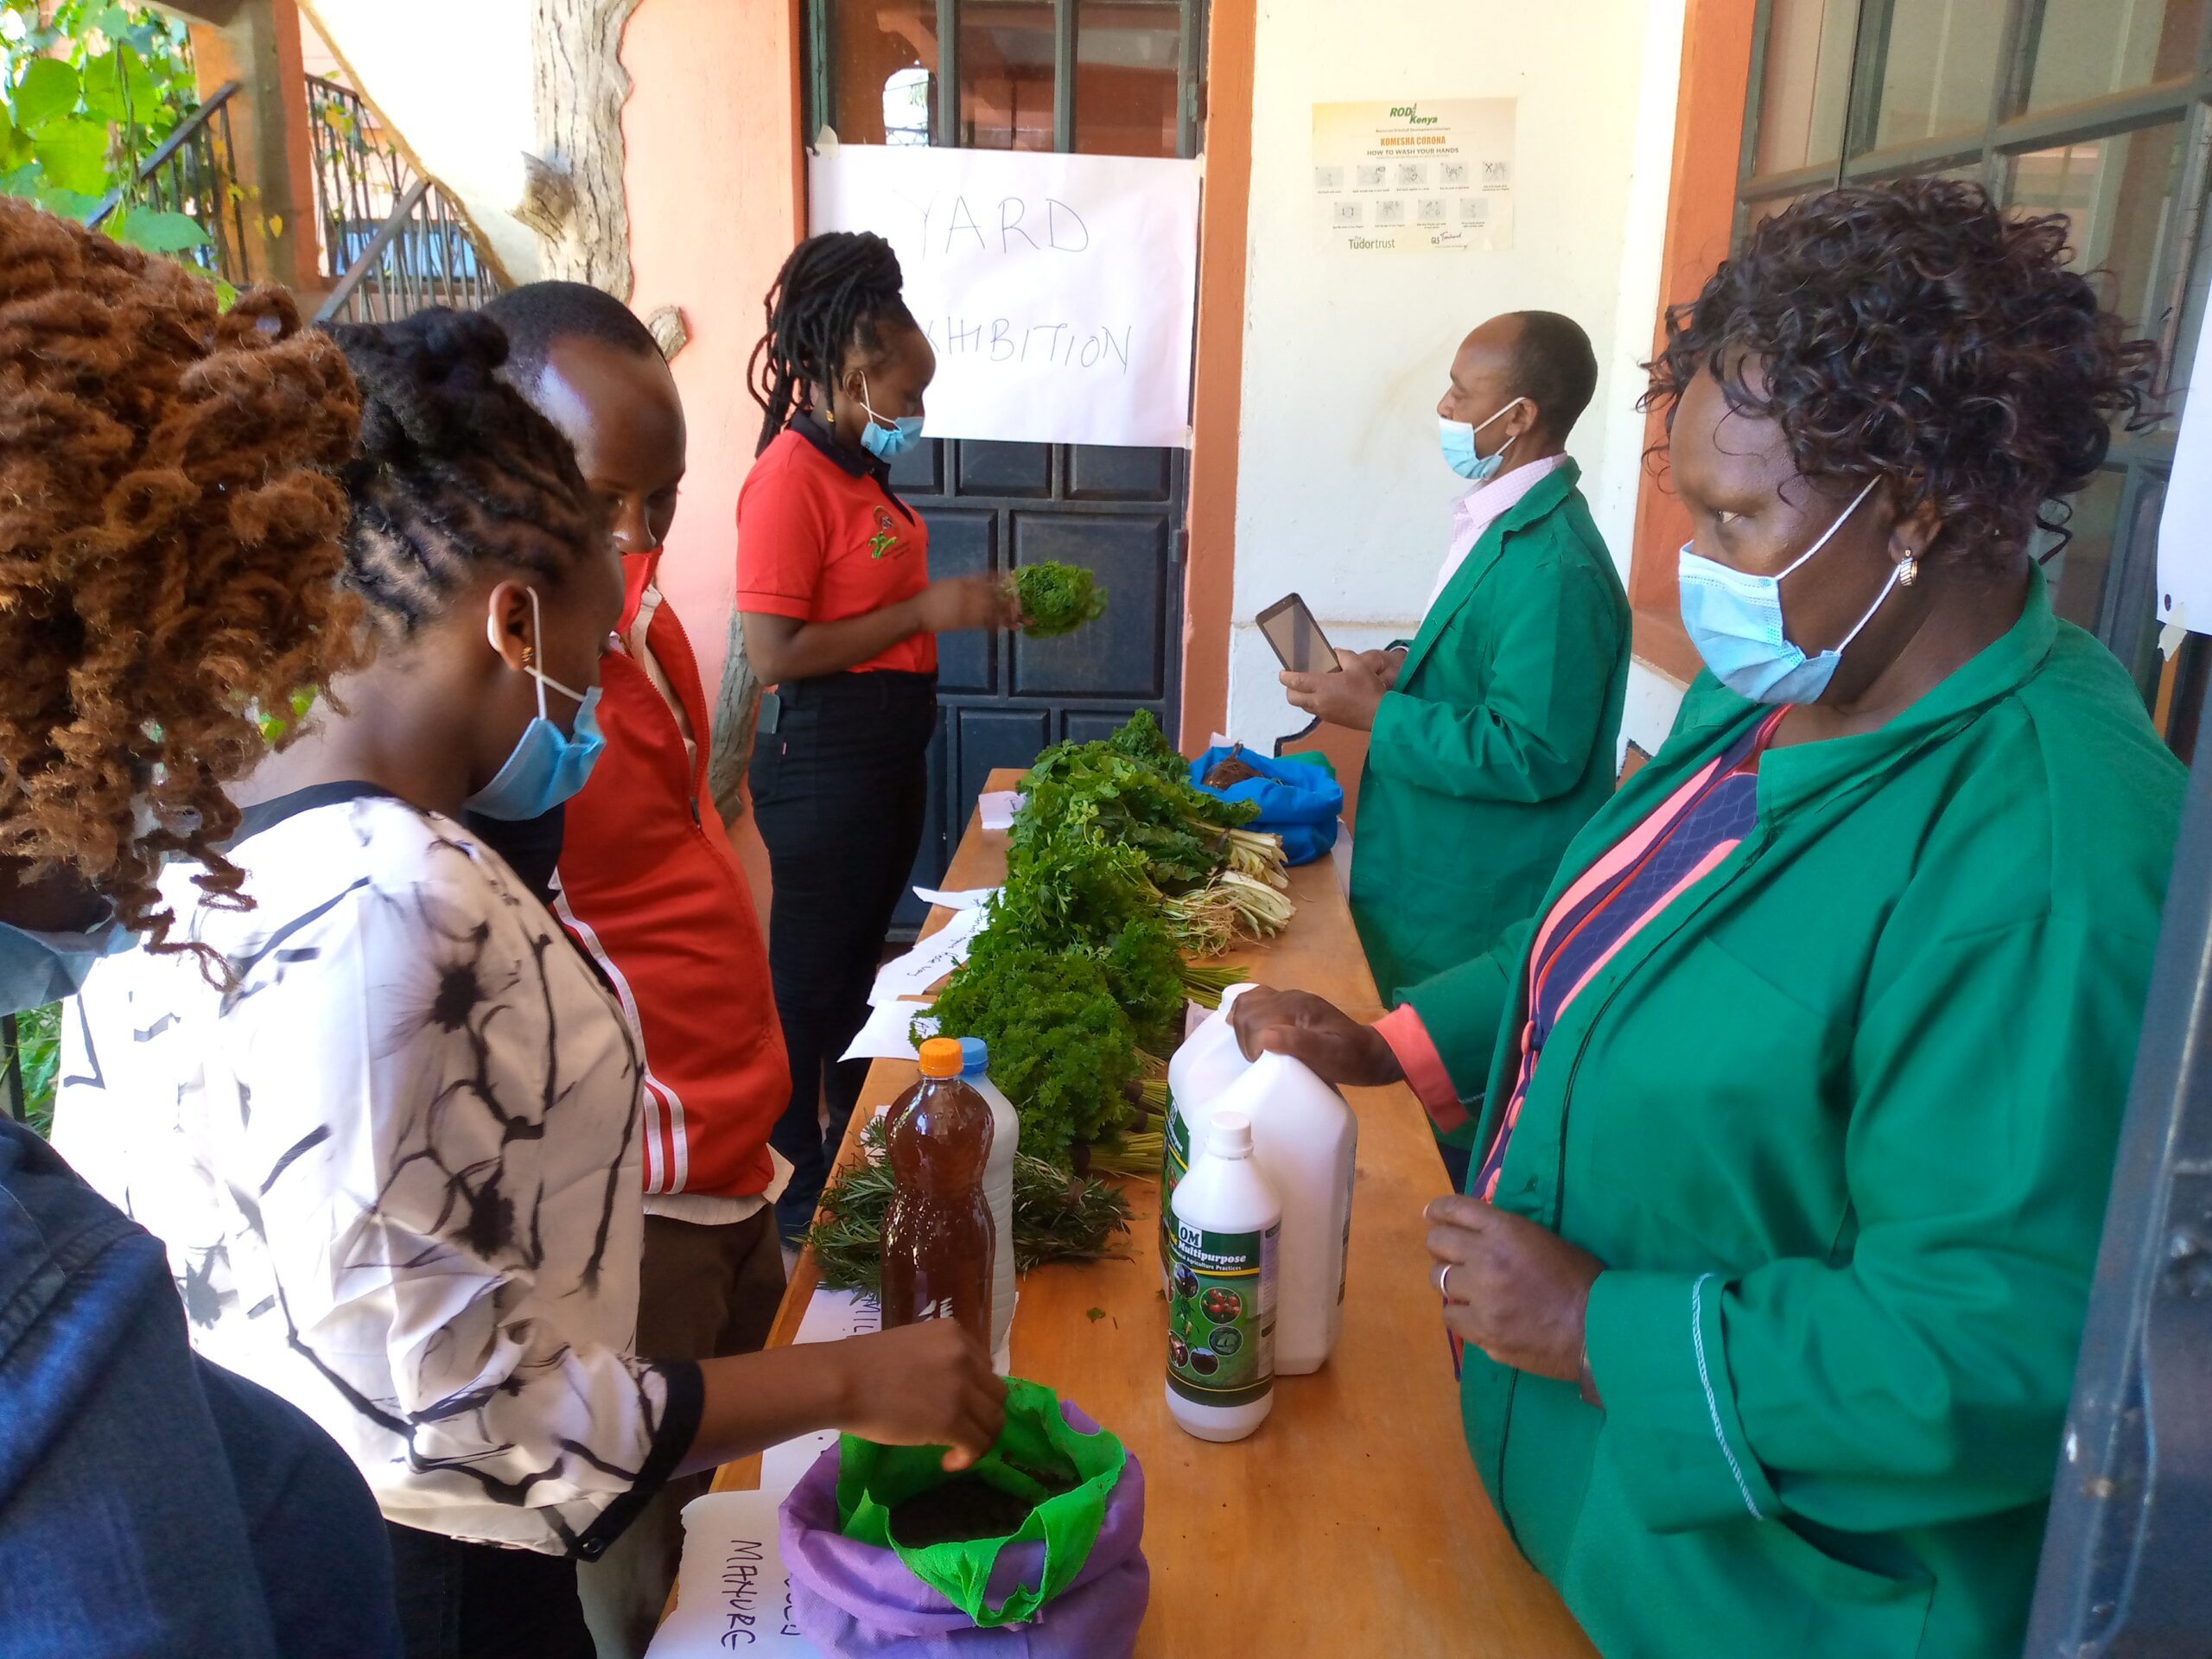 OACK Farmer showcasing her products during the 2020 World Soil Day Celebrations